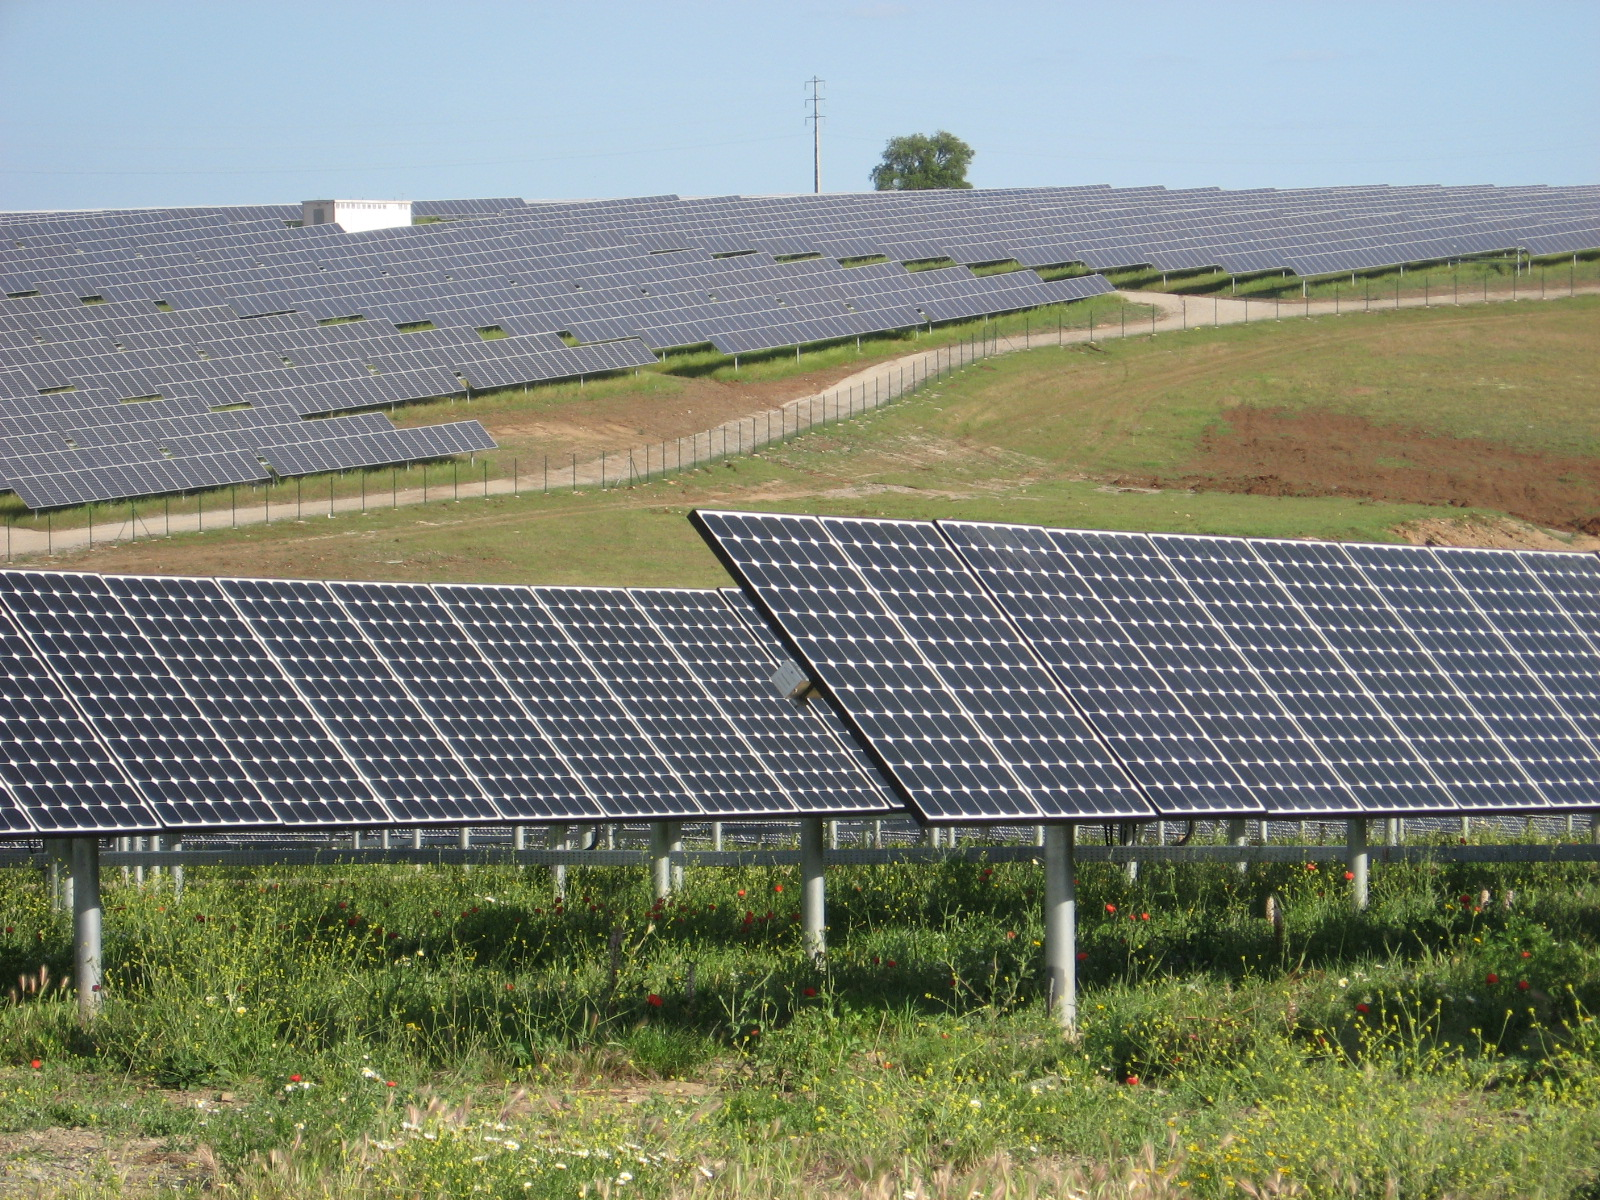 Bringing More Solar Jobs to The Palmetto State - HCS Renewable Energy joins SBA